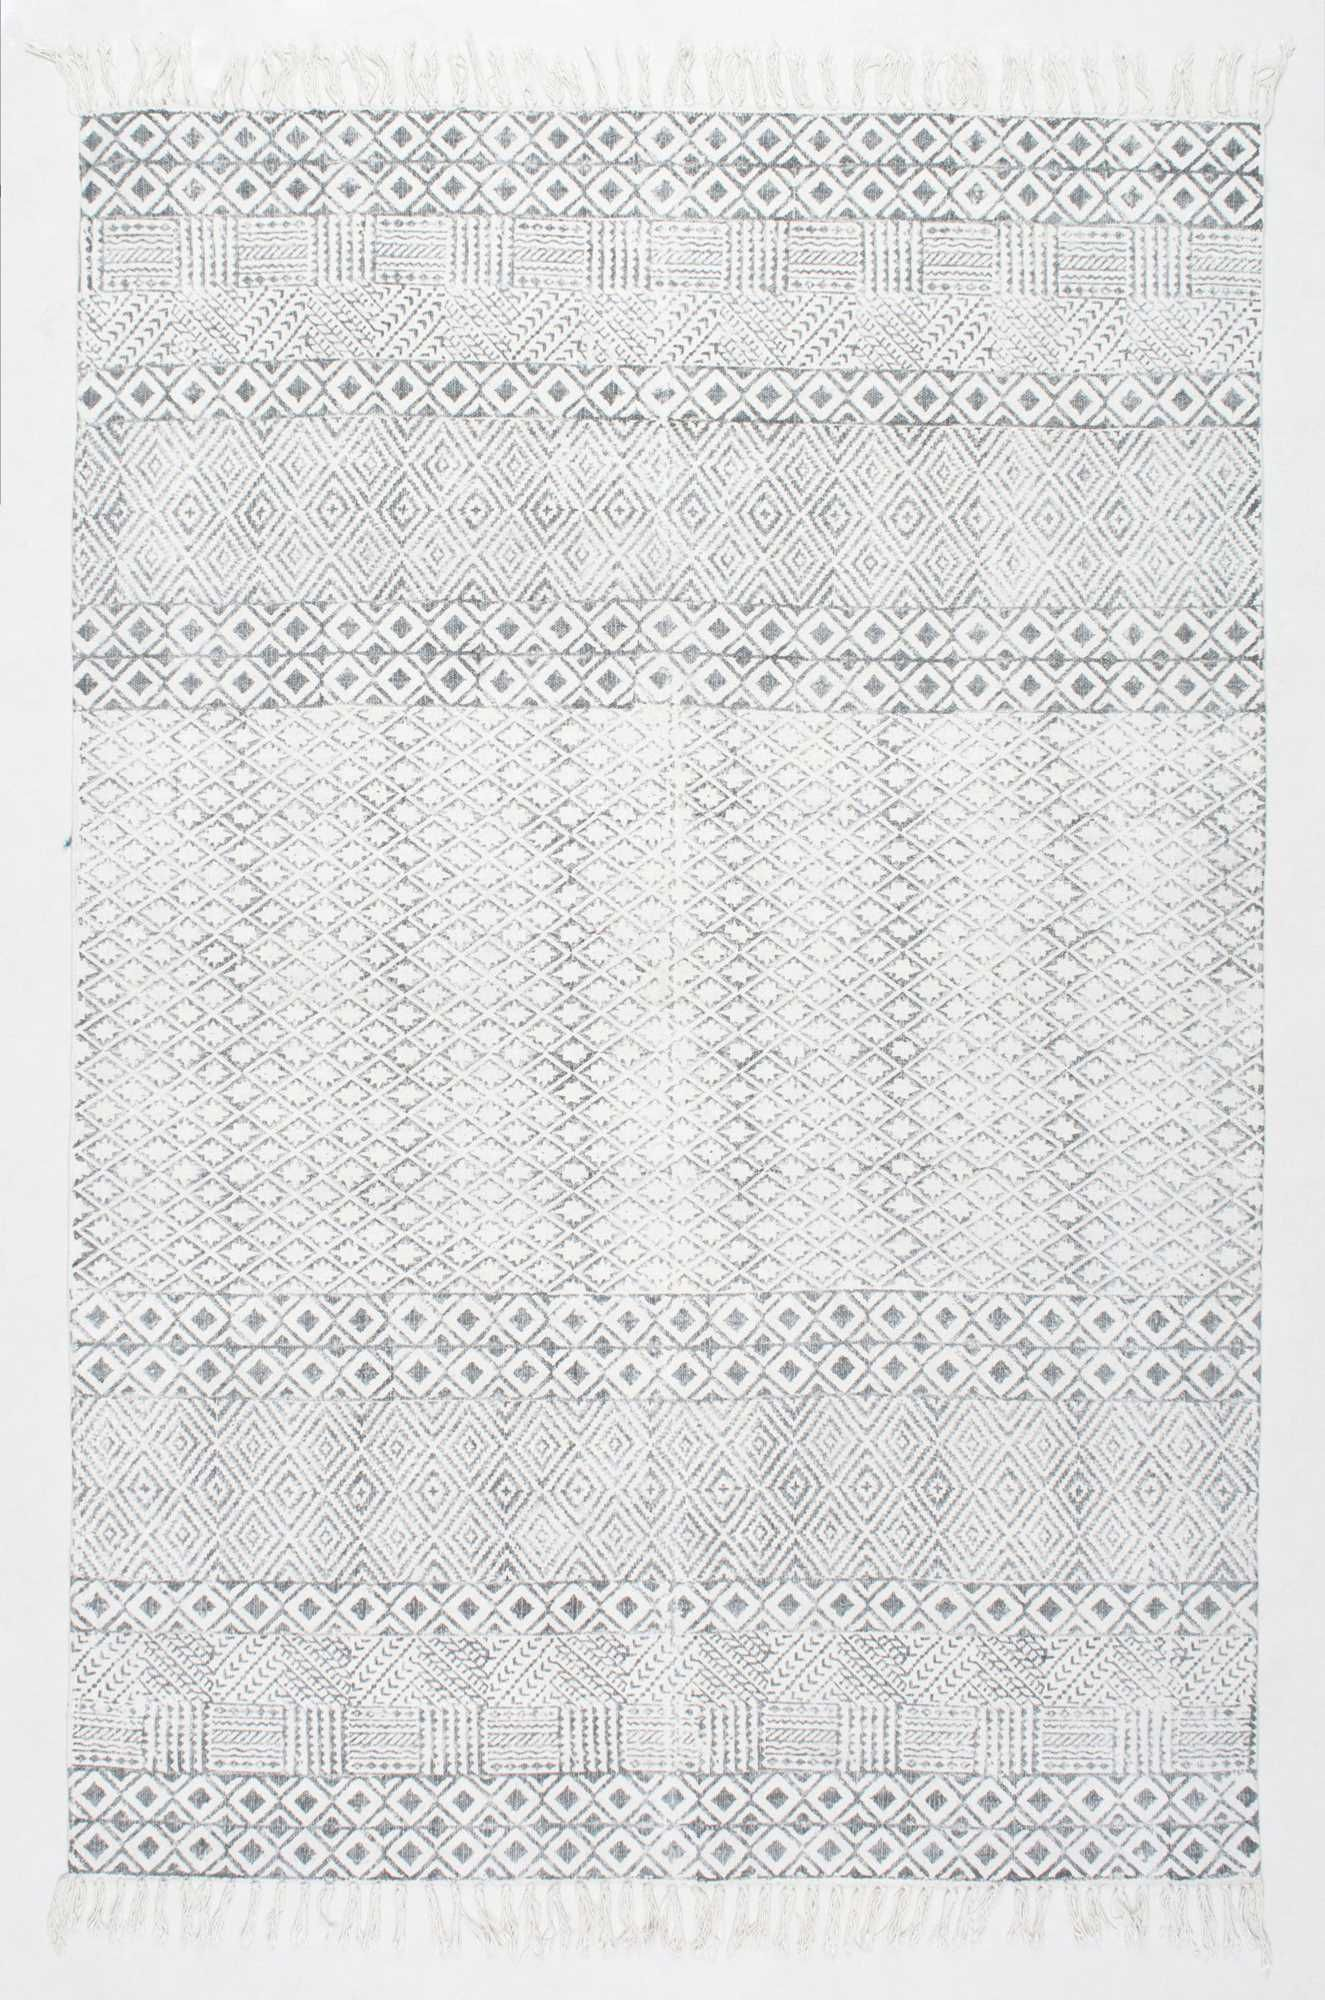 chembrach05 block printed cotton flatweave varied bands rug rugs